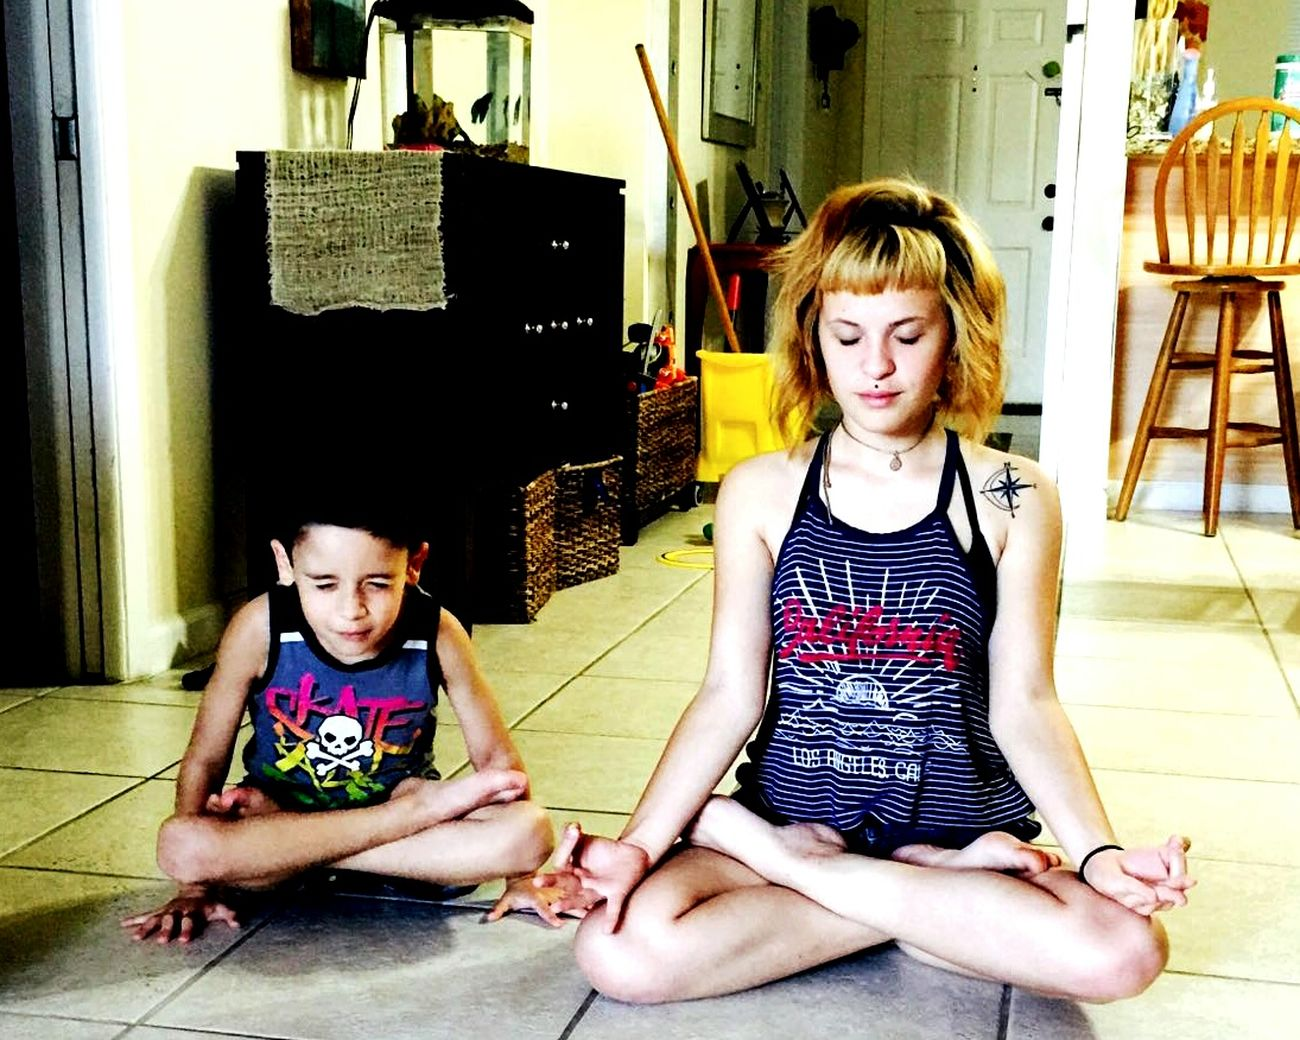 Meditation time! Nephewlove Meditation